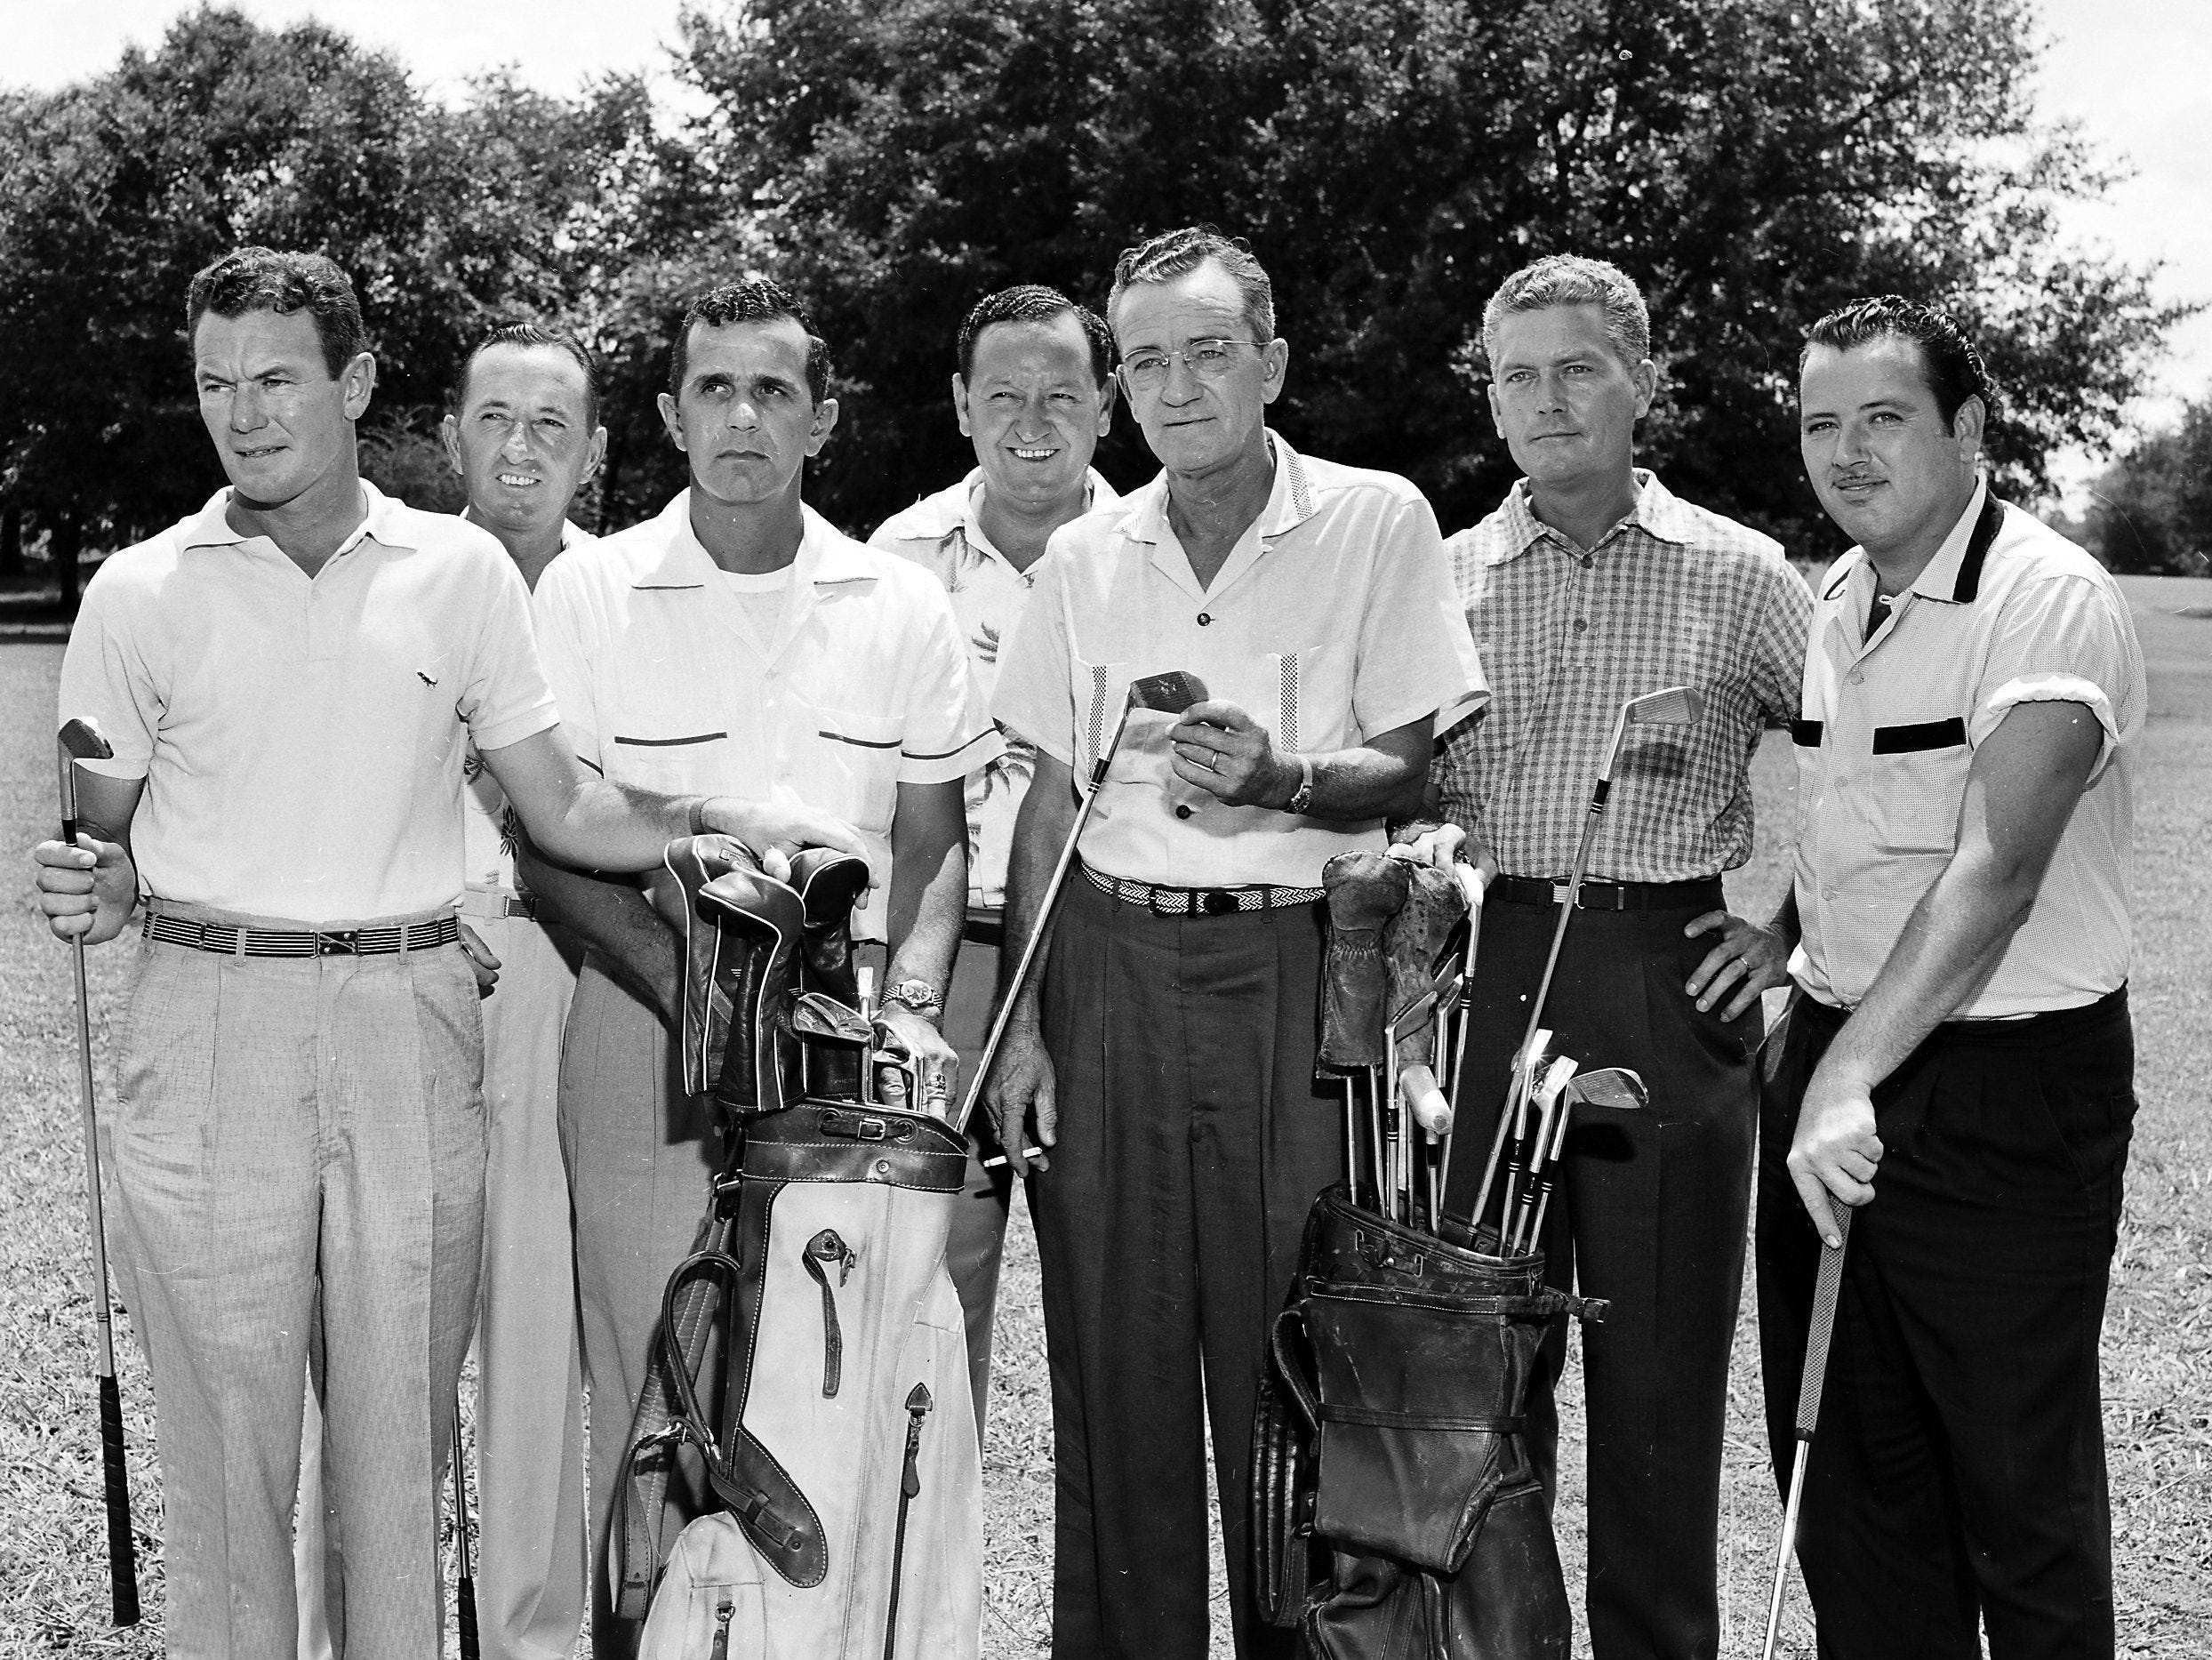 Meet the faculty for this town's biggest golfing school. The group, gathered here on 23 Jul 1955, will give several hundred youngsters the fundamentals of golf during the ninth annual Kid's Golf Clinic, starting at Overton Park on August 8. Pictured From Left are: Eddie Cook, pro at Audubon; Jake Fondren, pro at Colonial; Al Foster, pro at Overton; Dub Fondren, pro at Galloway; Buck Compton, driving range pro; Pat Abbott, pro at Memphis Country Club and Justin Reed, pro at Riverside. Others (Not Shown) who will help out are Arnold Mears, pro at Chickasaw; Jack Wenzler, pro at Ridgeway; Ed Creasy, pro at Pine Hill and Monk Joyner, pro at Chickasaw.